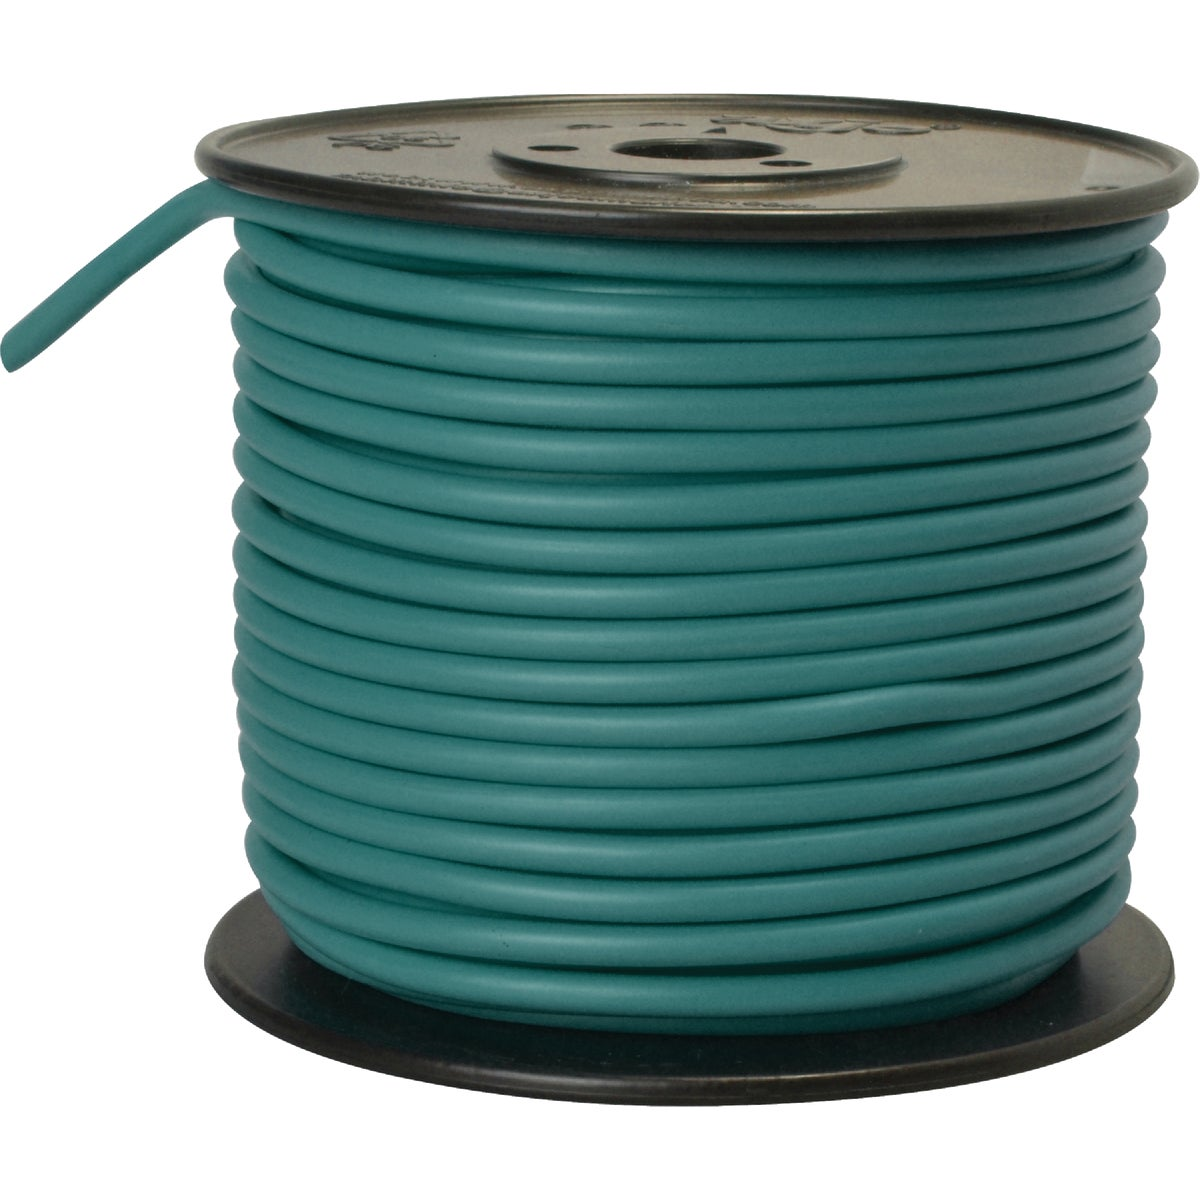 100' 10GA GRN AUTO WIRE - 10-100-15 by Woods Wire Coleman